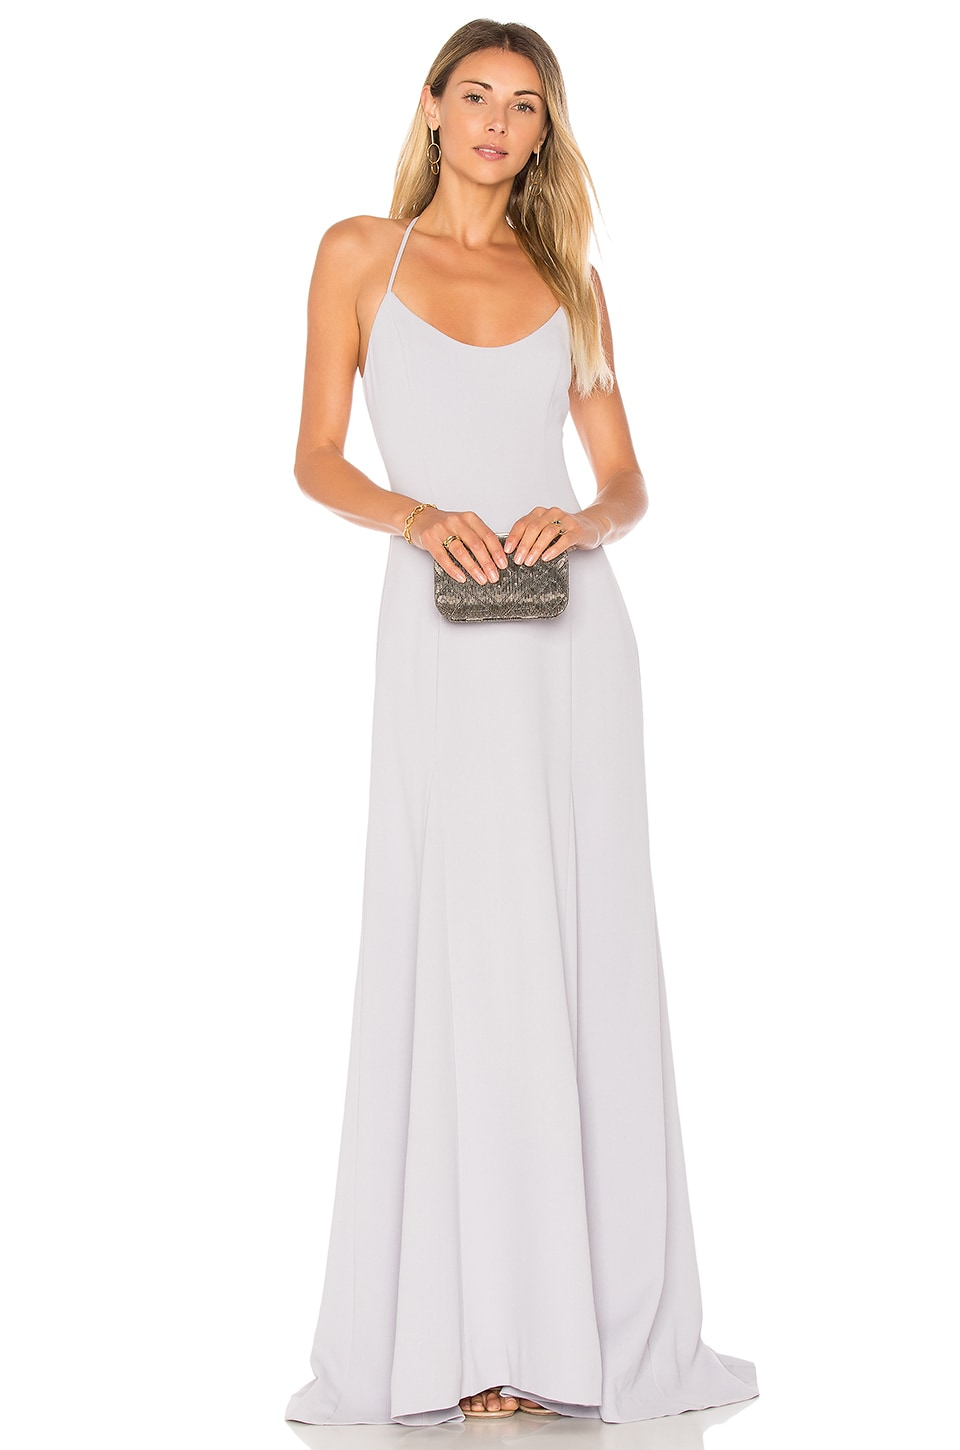 Lovers + Friends x REVOLVE Brantford Gown in Periwinkle